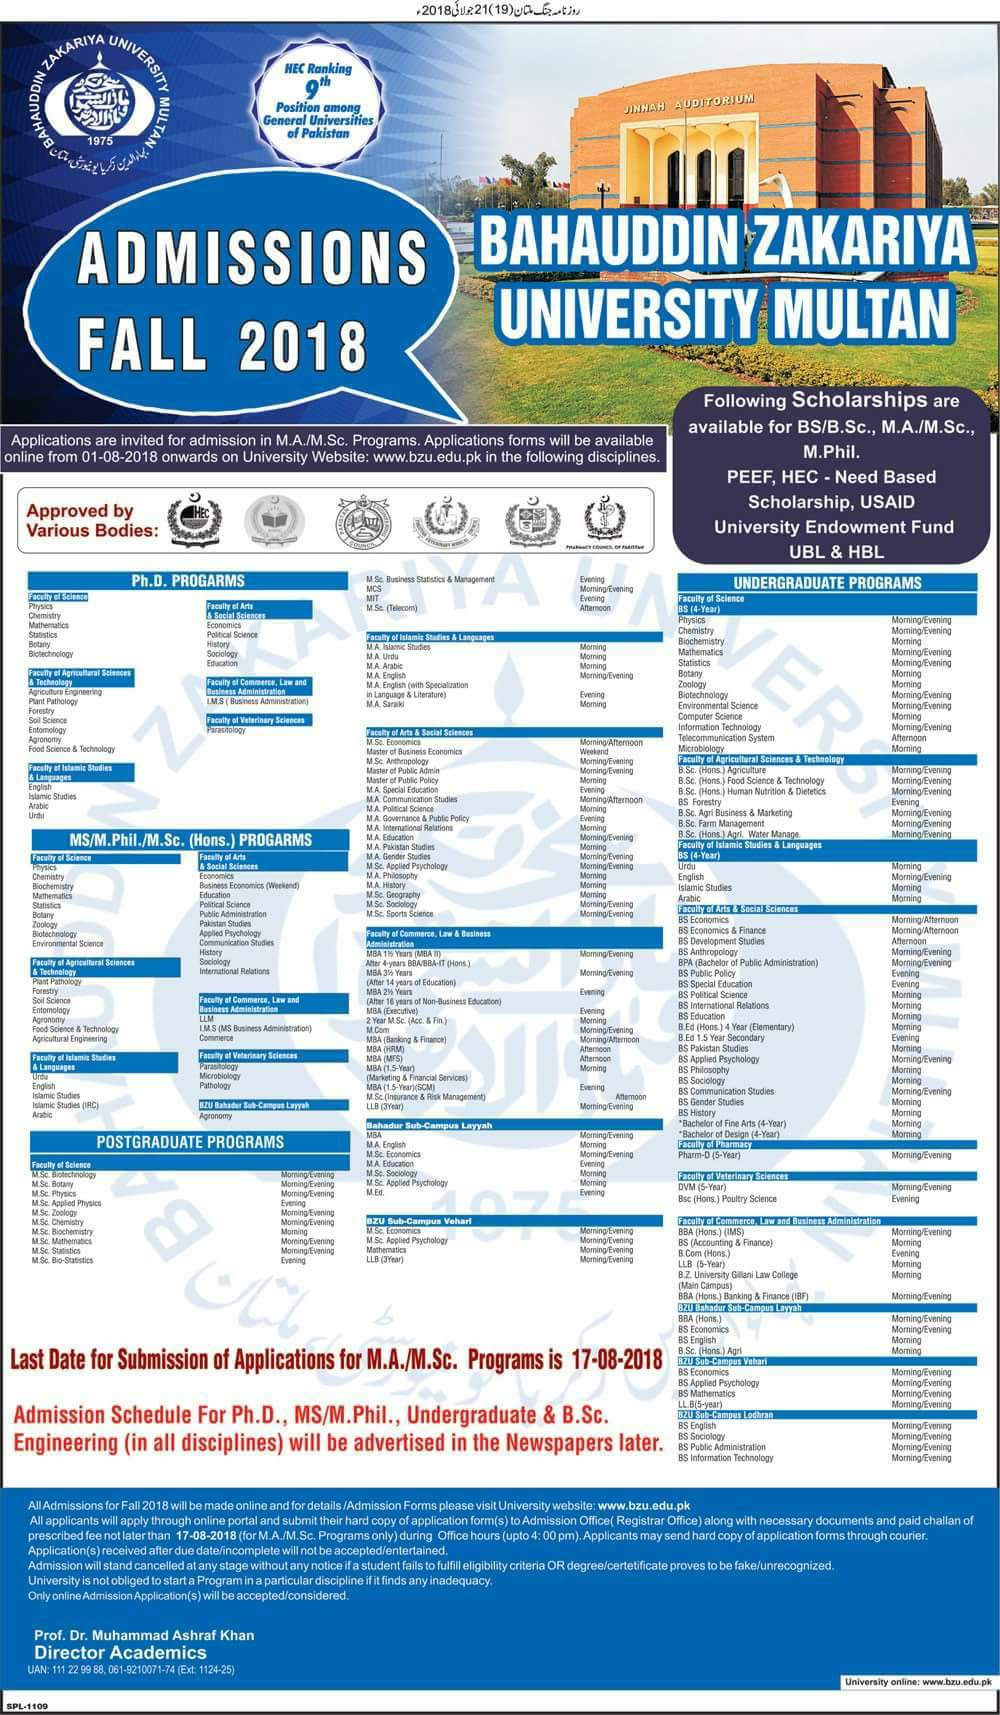 BZU Admission Fall 2018 - MA MSc Programs Apply Online on Official Website from August 1 to 17